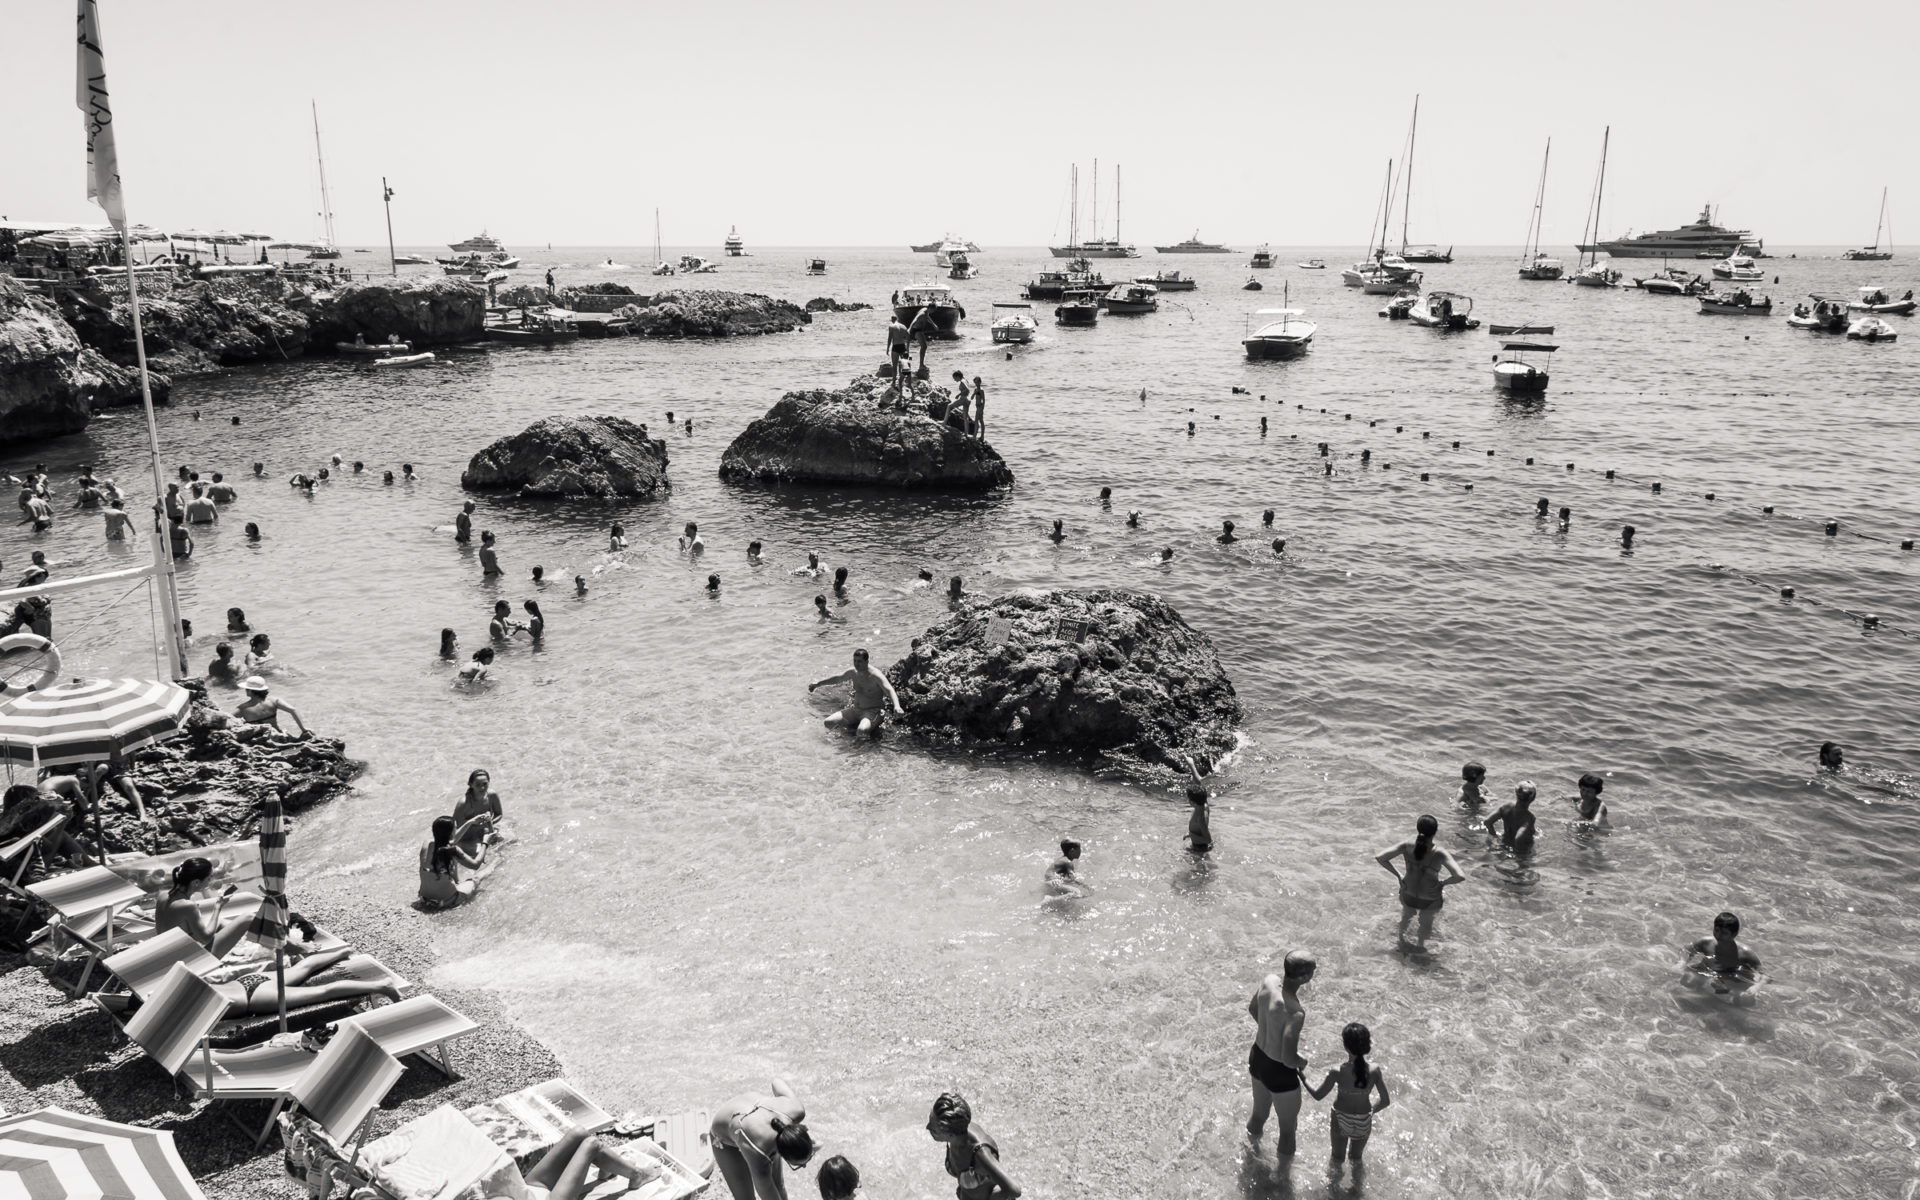 Tourists swimming with boats at Capri Island